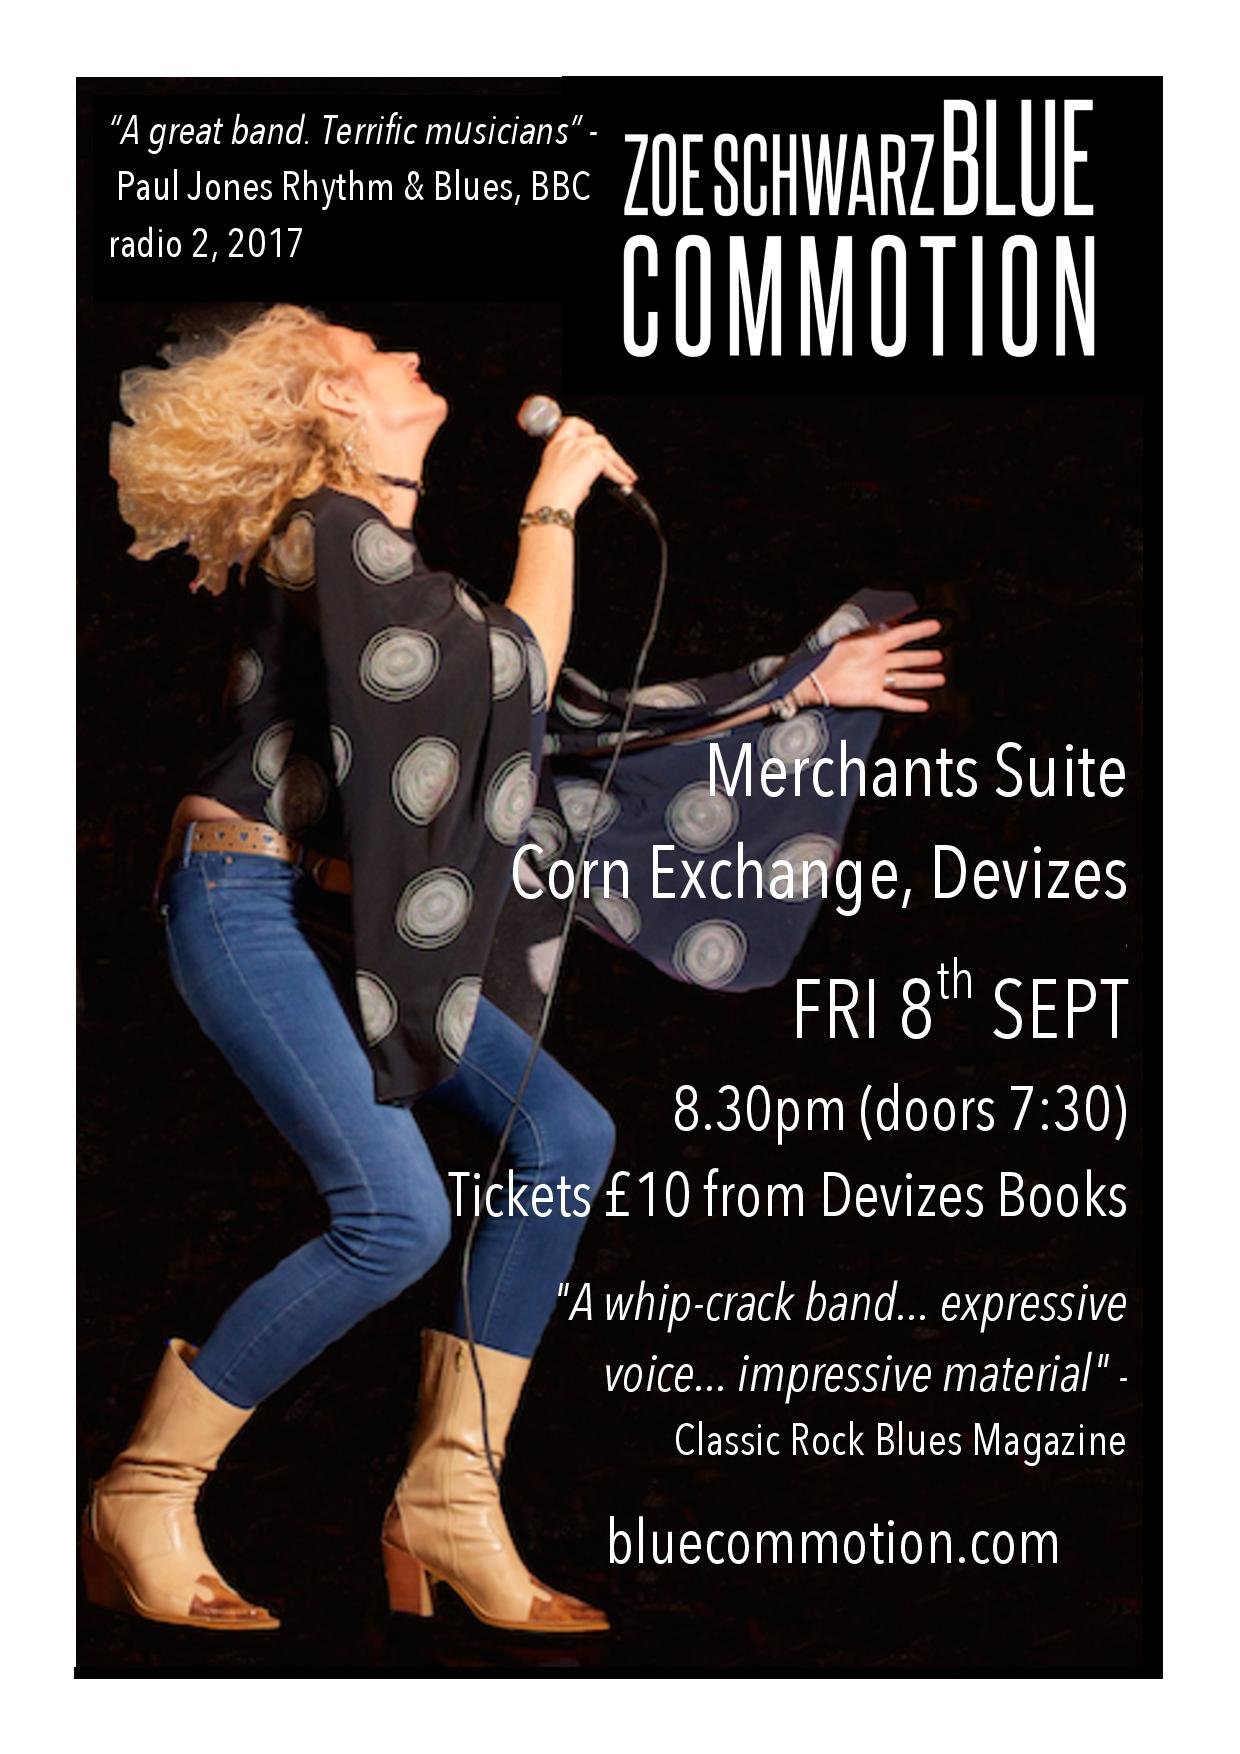 Zoe Schwarz Blue Commotion play at The Corn Exchange